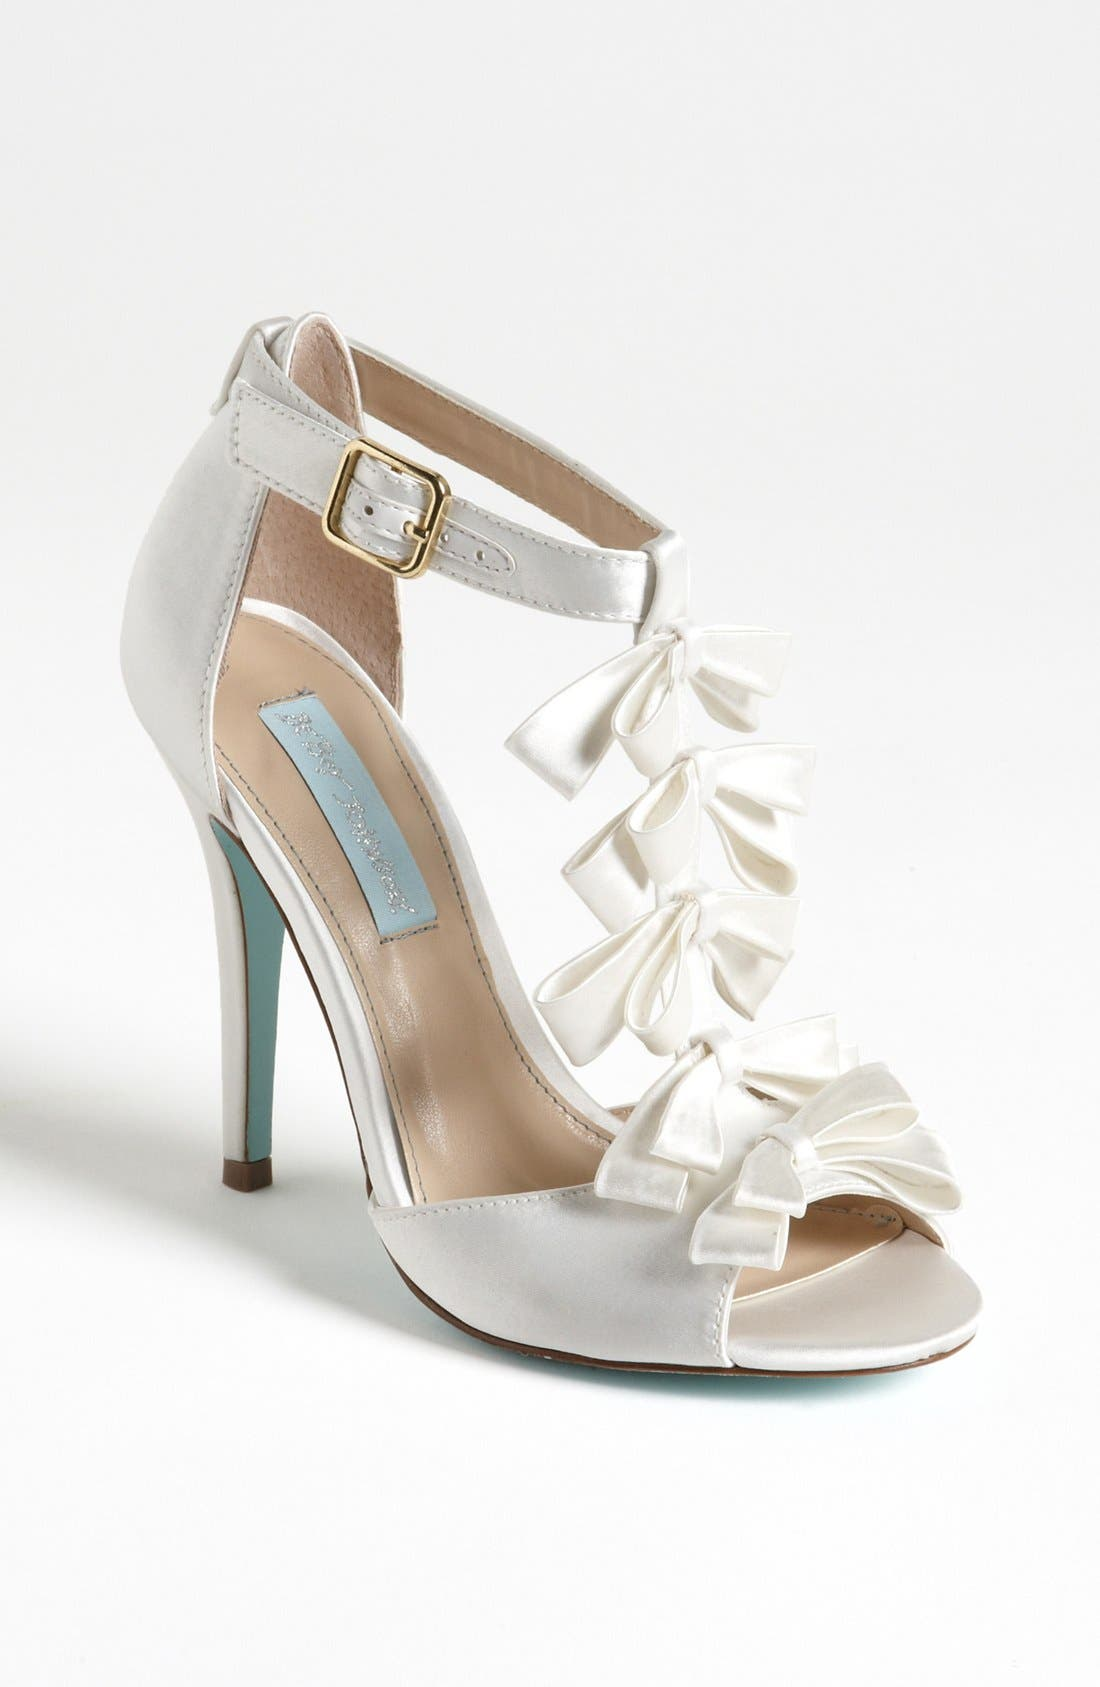 Main Image - Blue by Betsey Johnson 'Knot' Sandal